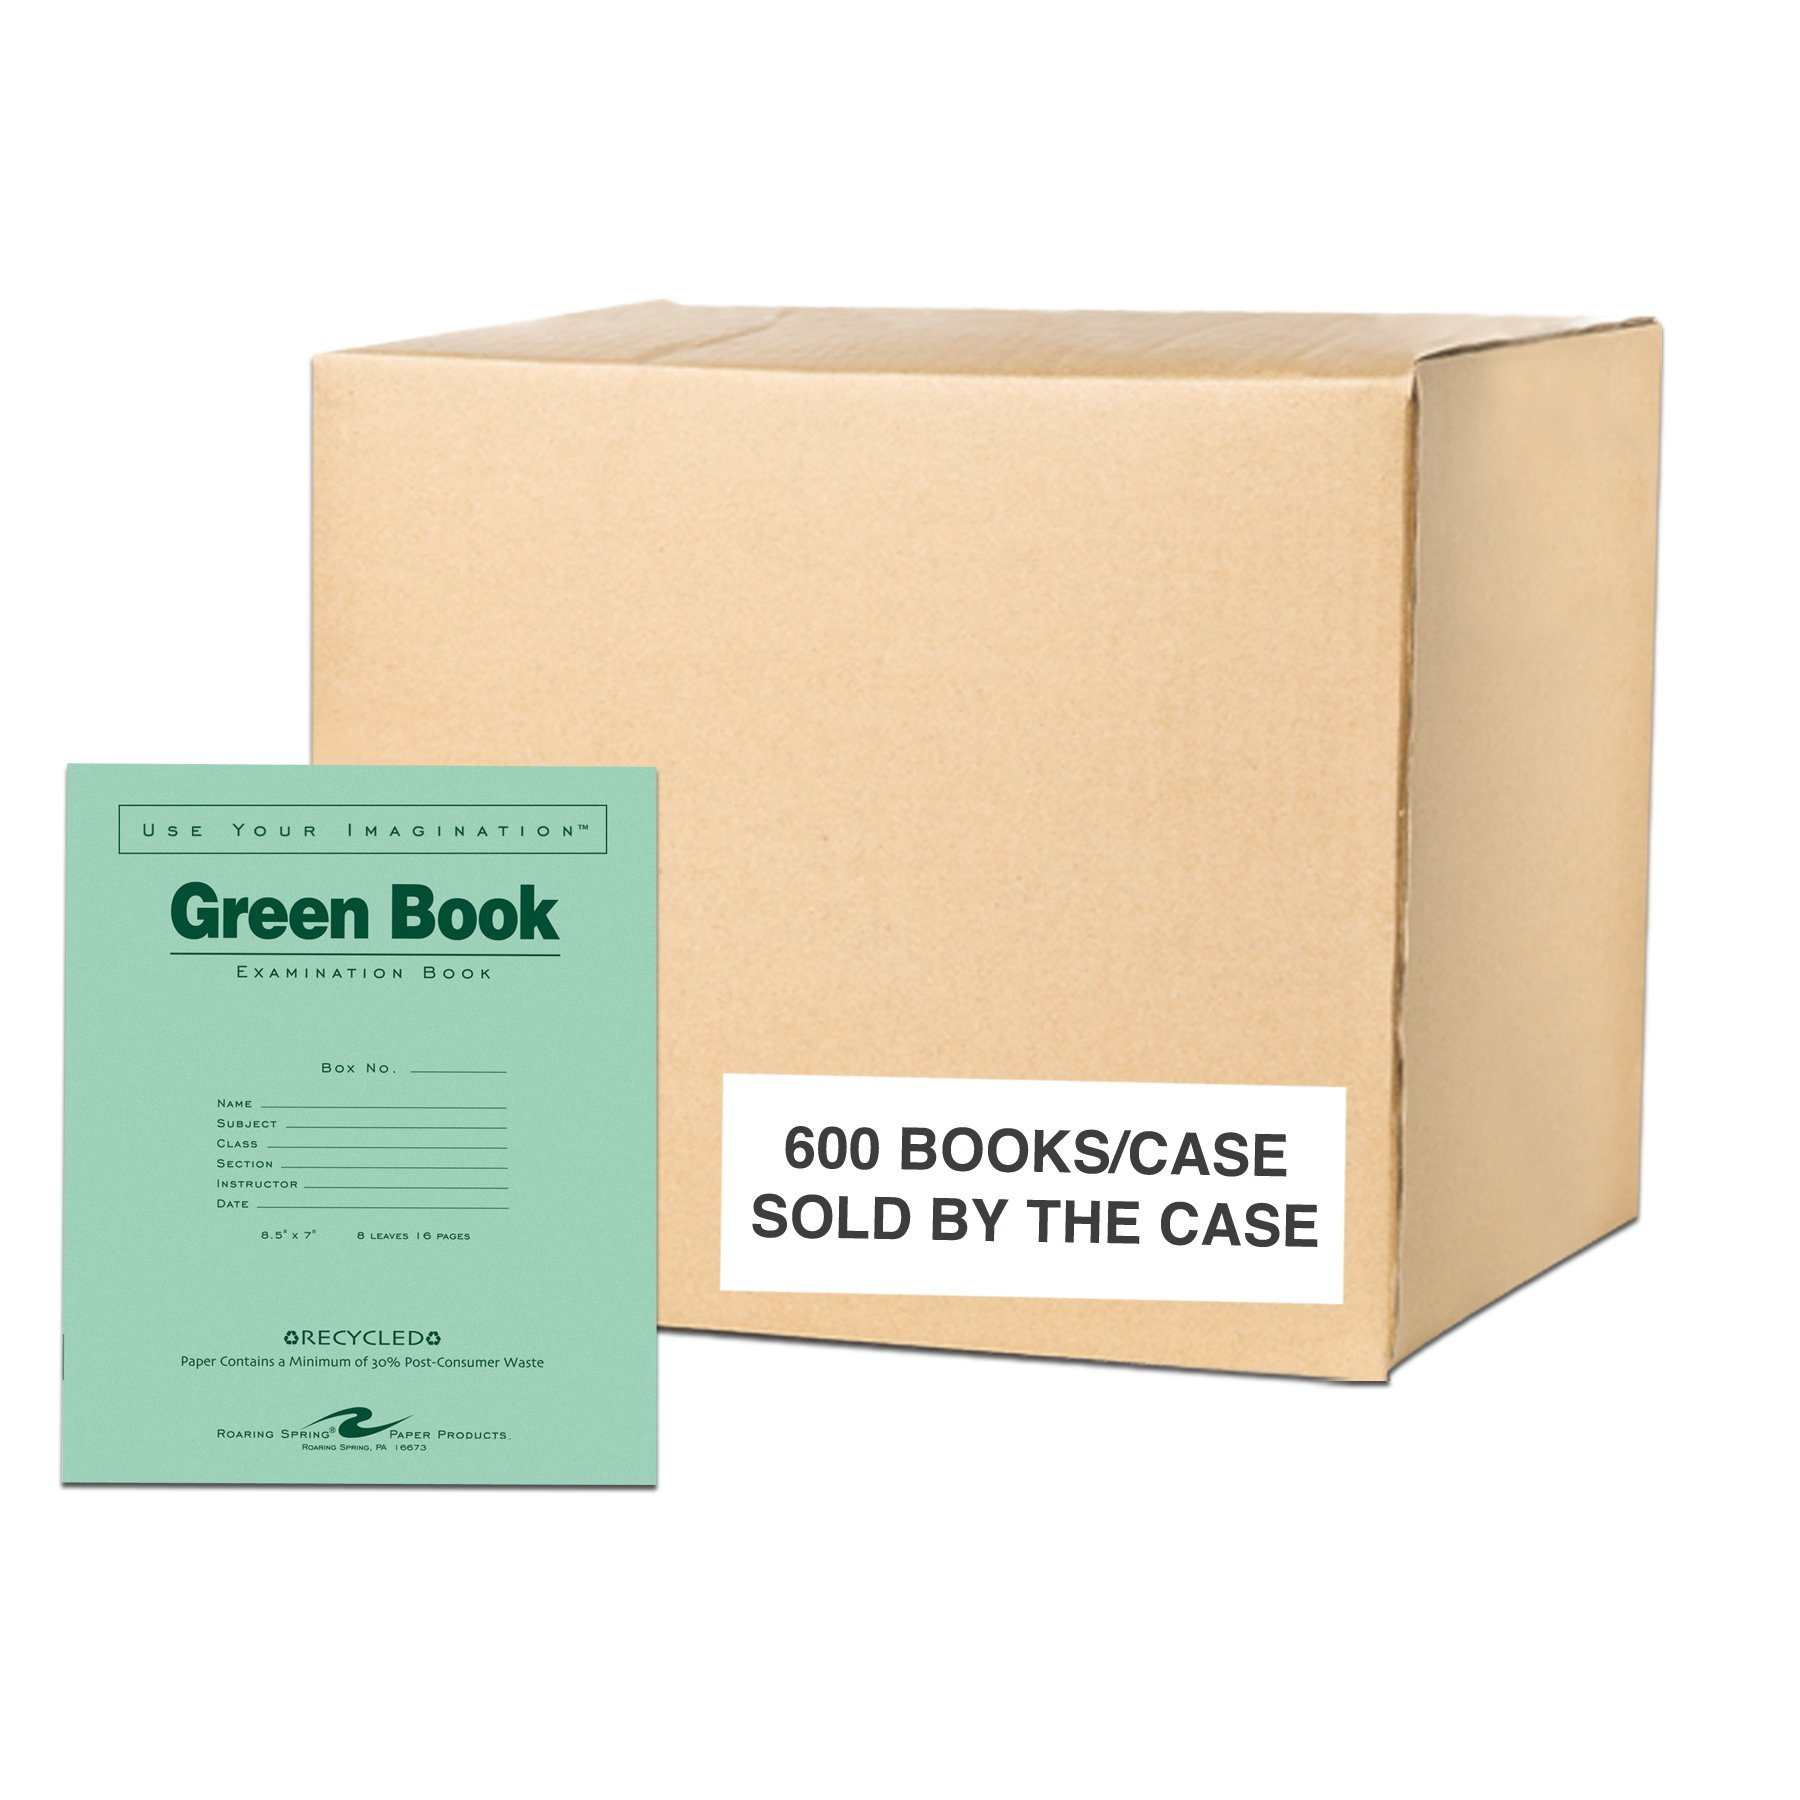 Case of 600 Exam Books, 8.5''x7'', 8 sheets/16 pages of 15# Recycled White Paper, Heavy Recycled Green Cover, Stapled by Roaring Spring Paper Products